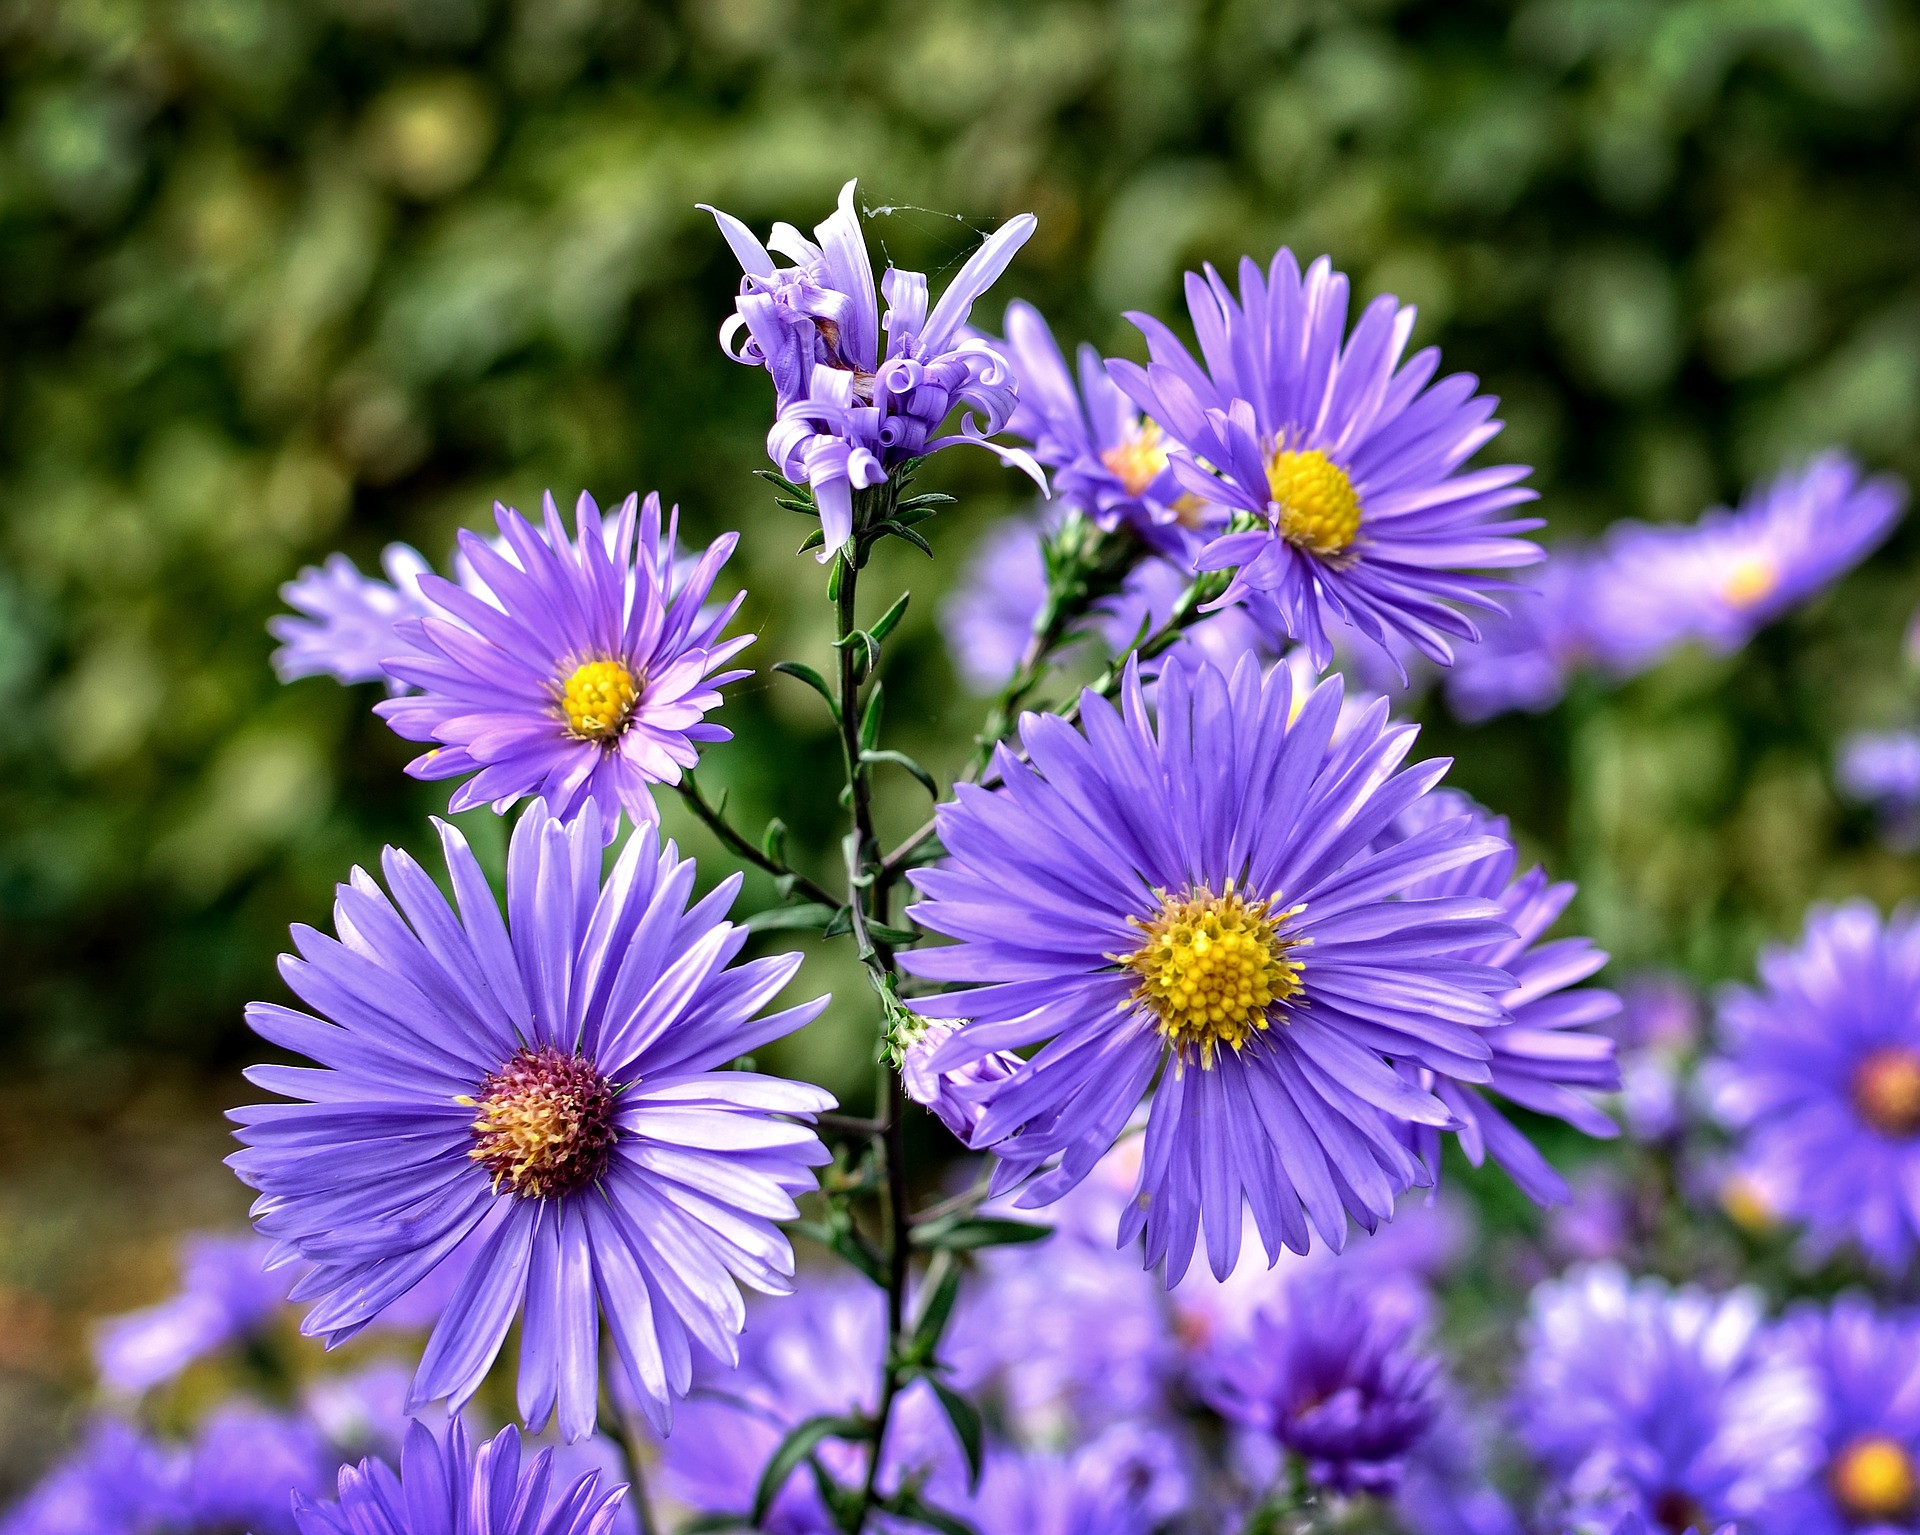 Aster how to plant grow and care for aster flowers the old aster how to plant grow and care for aster flowers the old farmers almanac izmirmasajfo